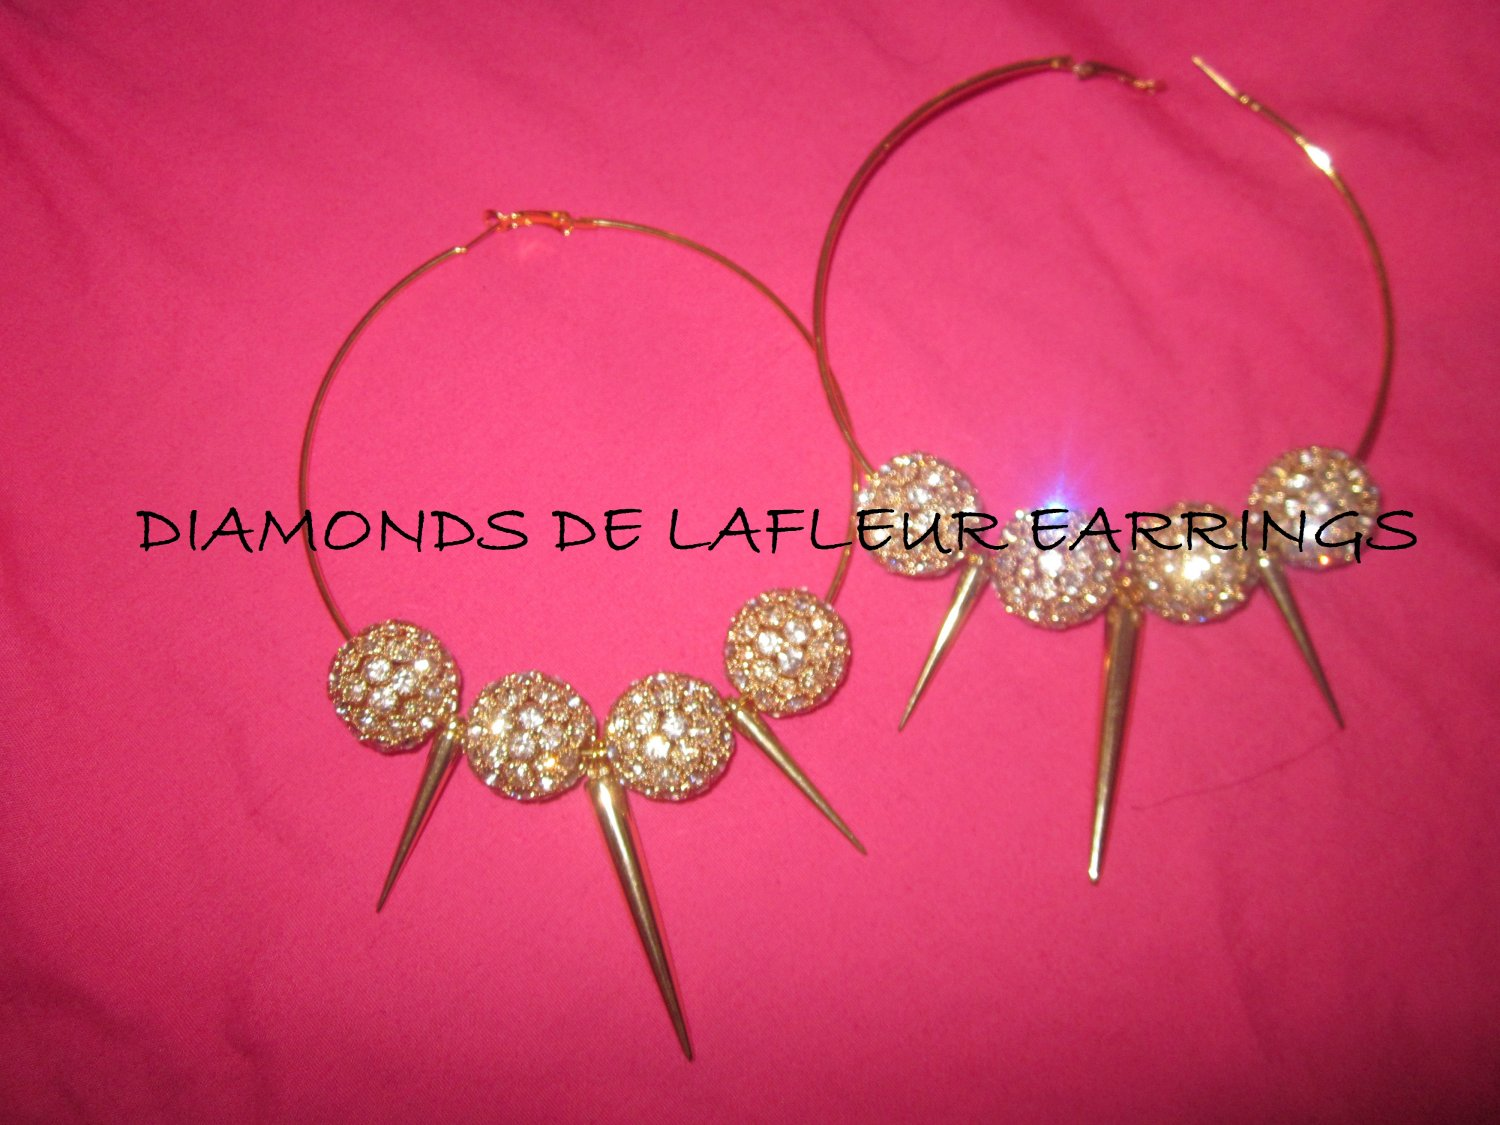 Crystal Ball Hoop Earrings with Spikes like Basketball Wives